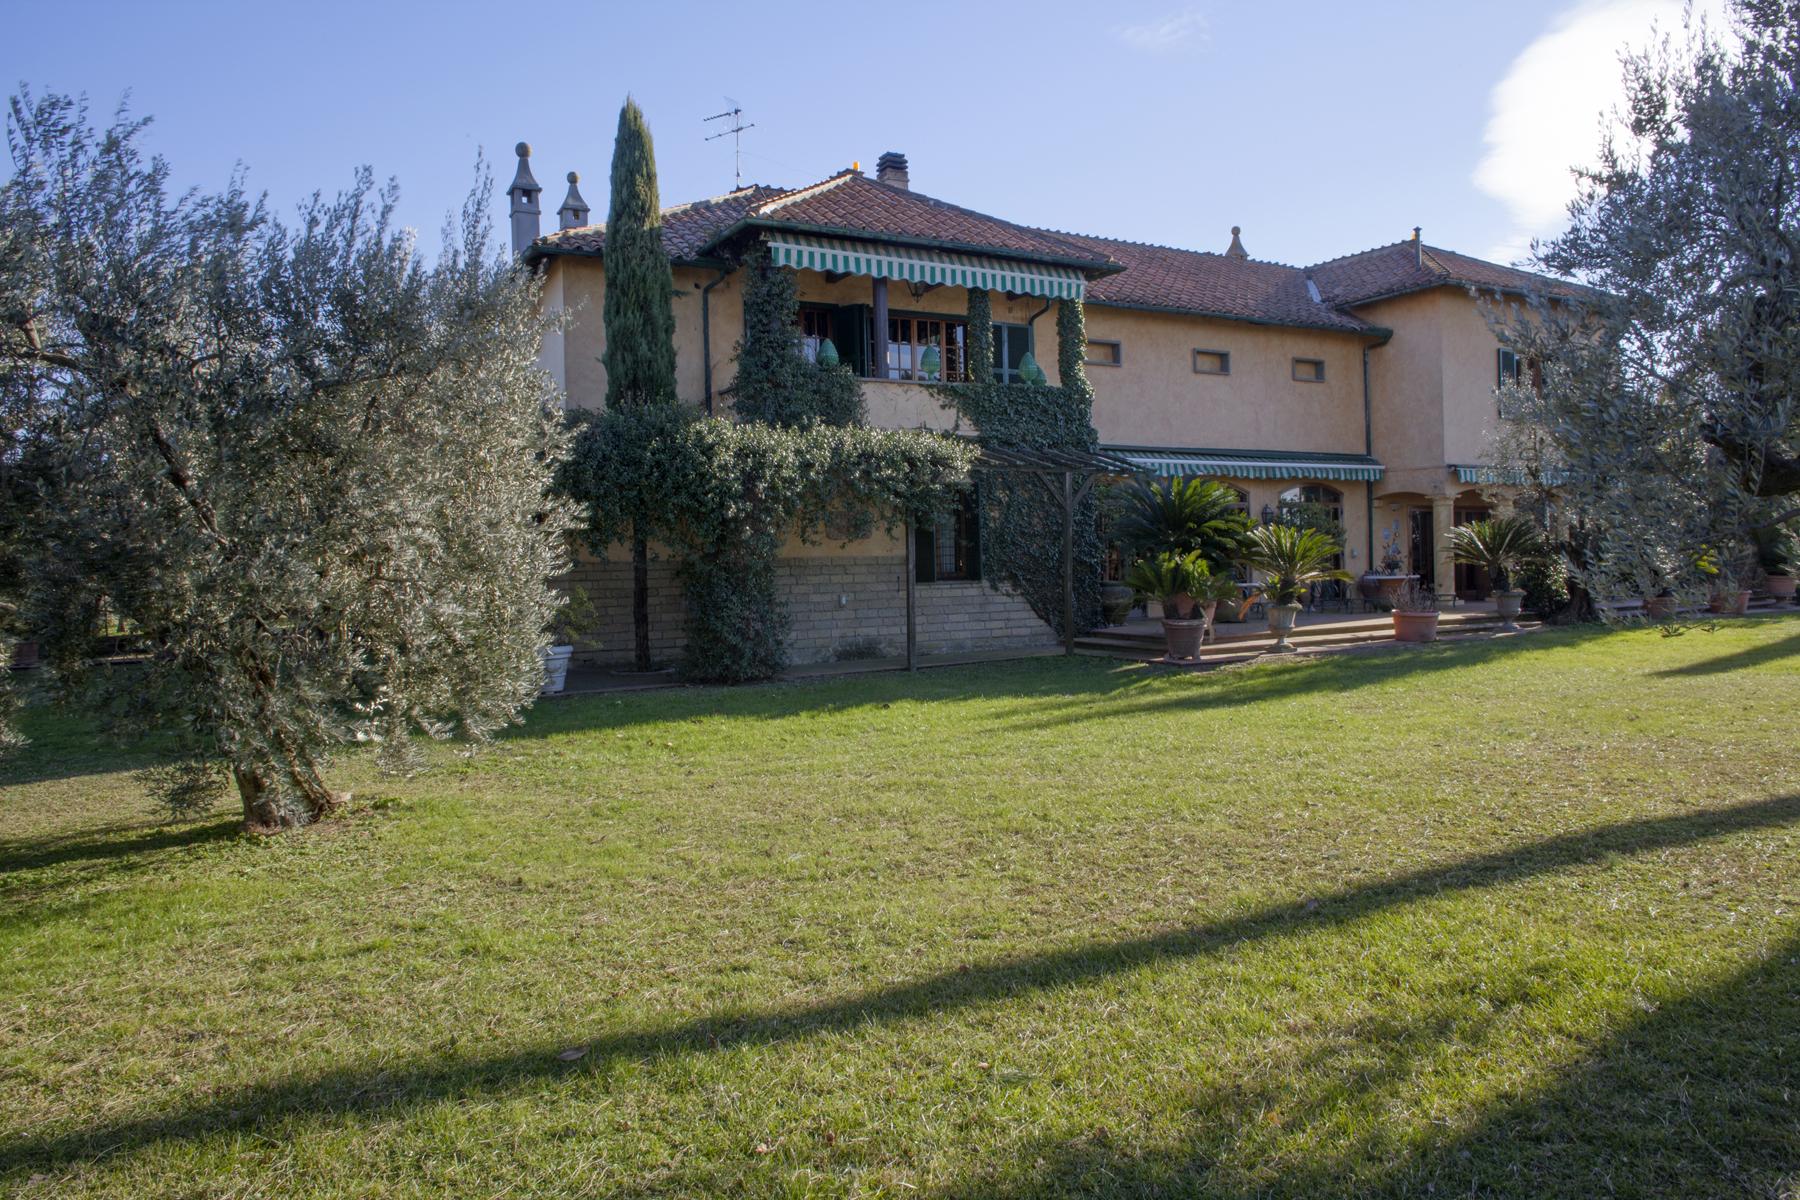 Additional photo for property listing at Magnificent Villa in the Castelli Romani with pool Via Giovanni Pascoli Marino, Roma 00047 Italia